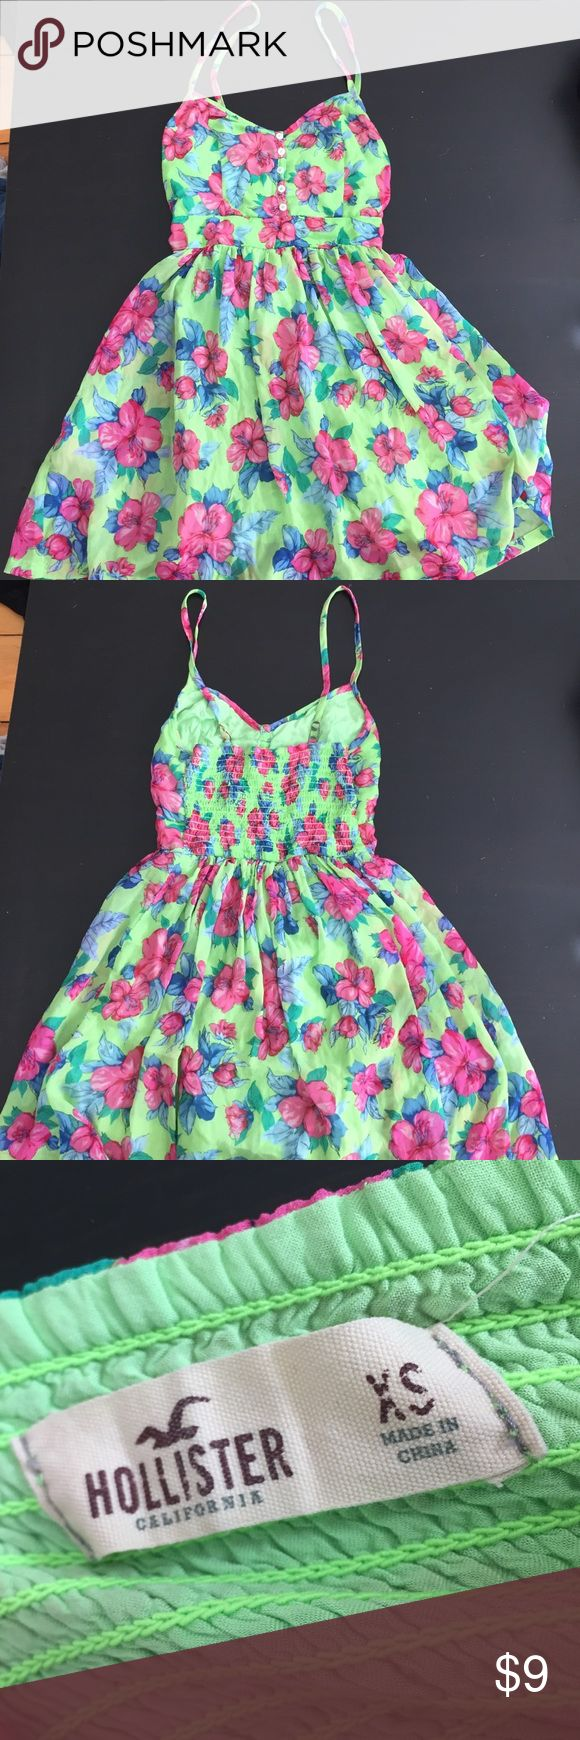 XS lime green flower hollister dress XS SHORT line green hollister dress with flowers! Worn but still cute Hollister Dresses Mini